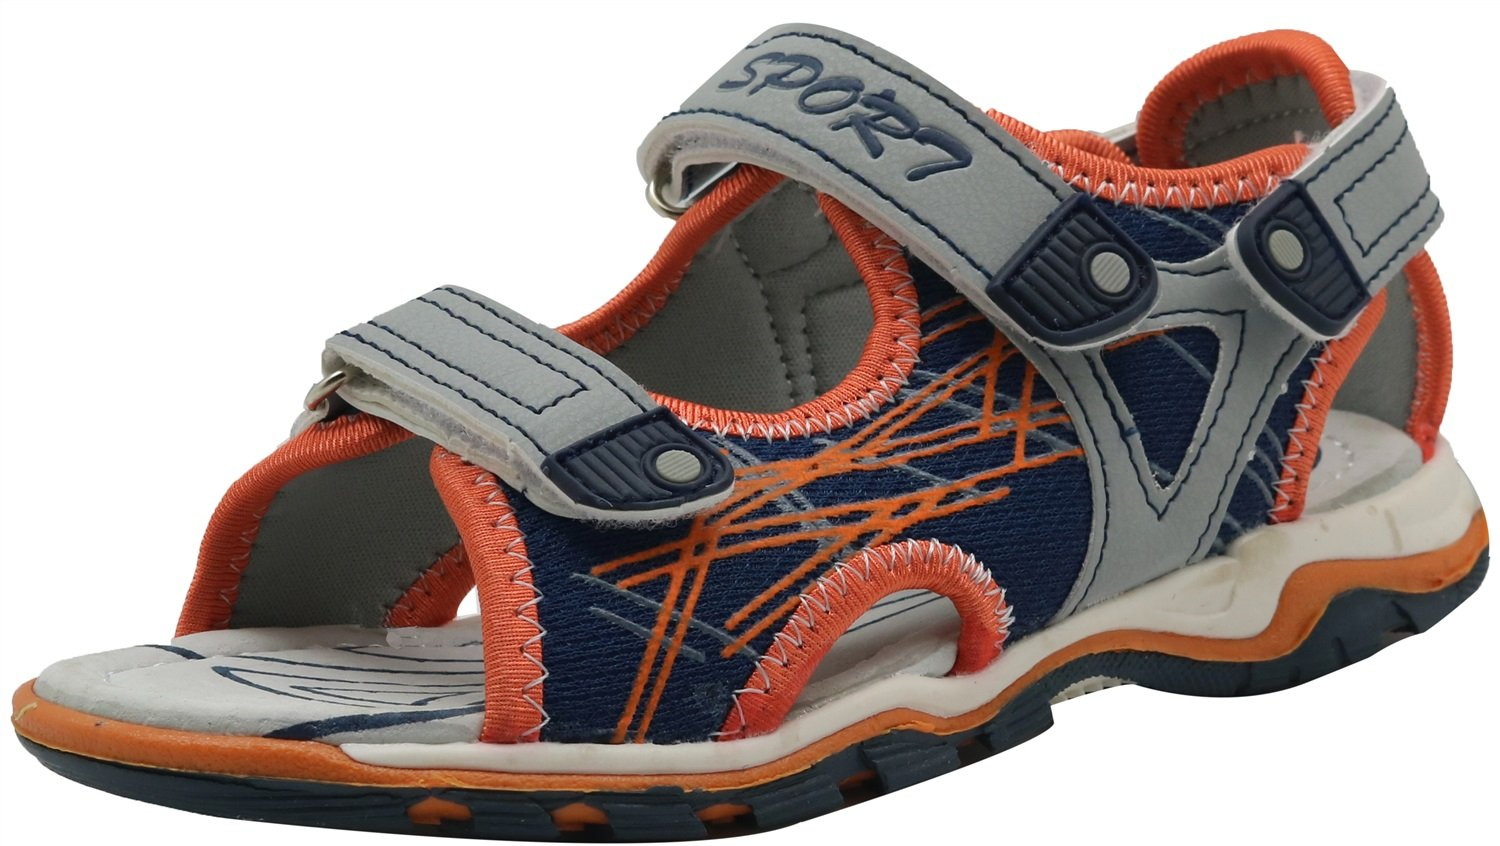 Toddler//Little Kid Durable Non-Slip Kids Boys Summer Shoes Lightweight Athletic Sport Beach Sandals Color : Orange , Size : 13 M US Little Kid